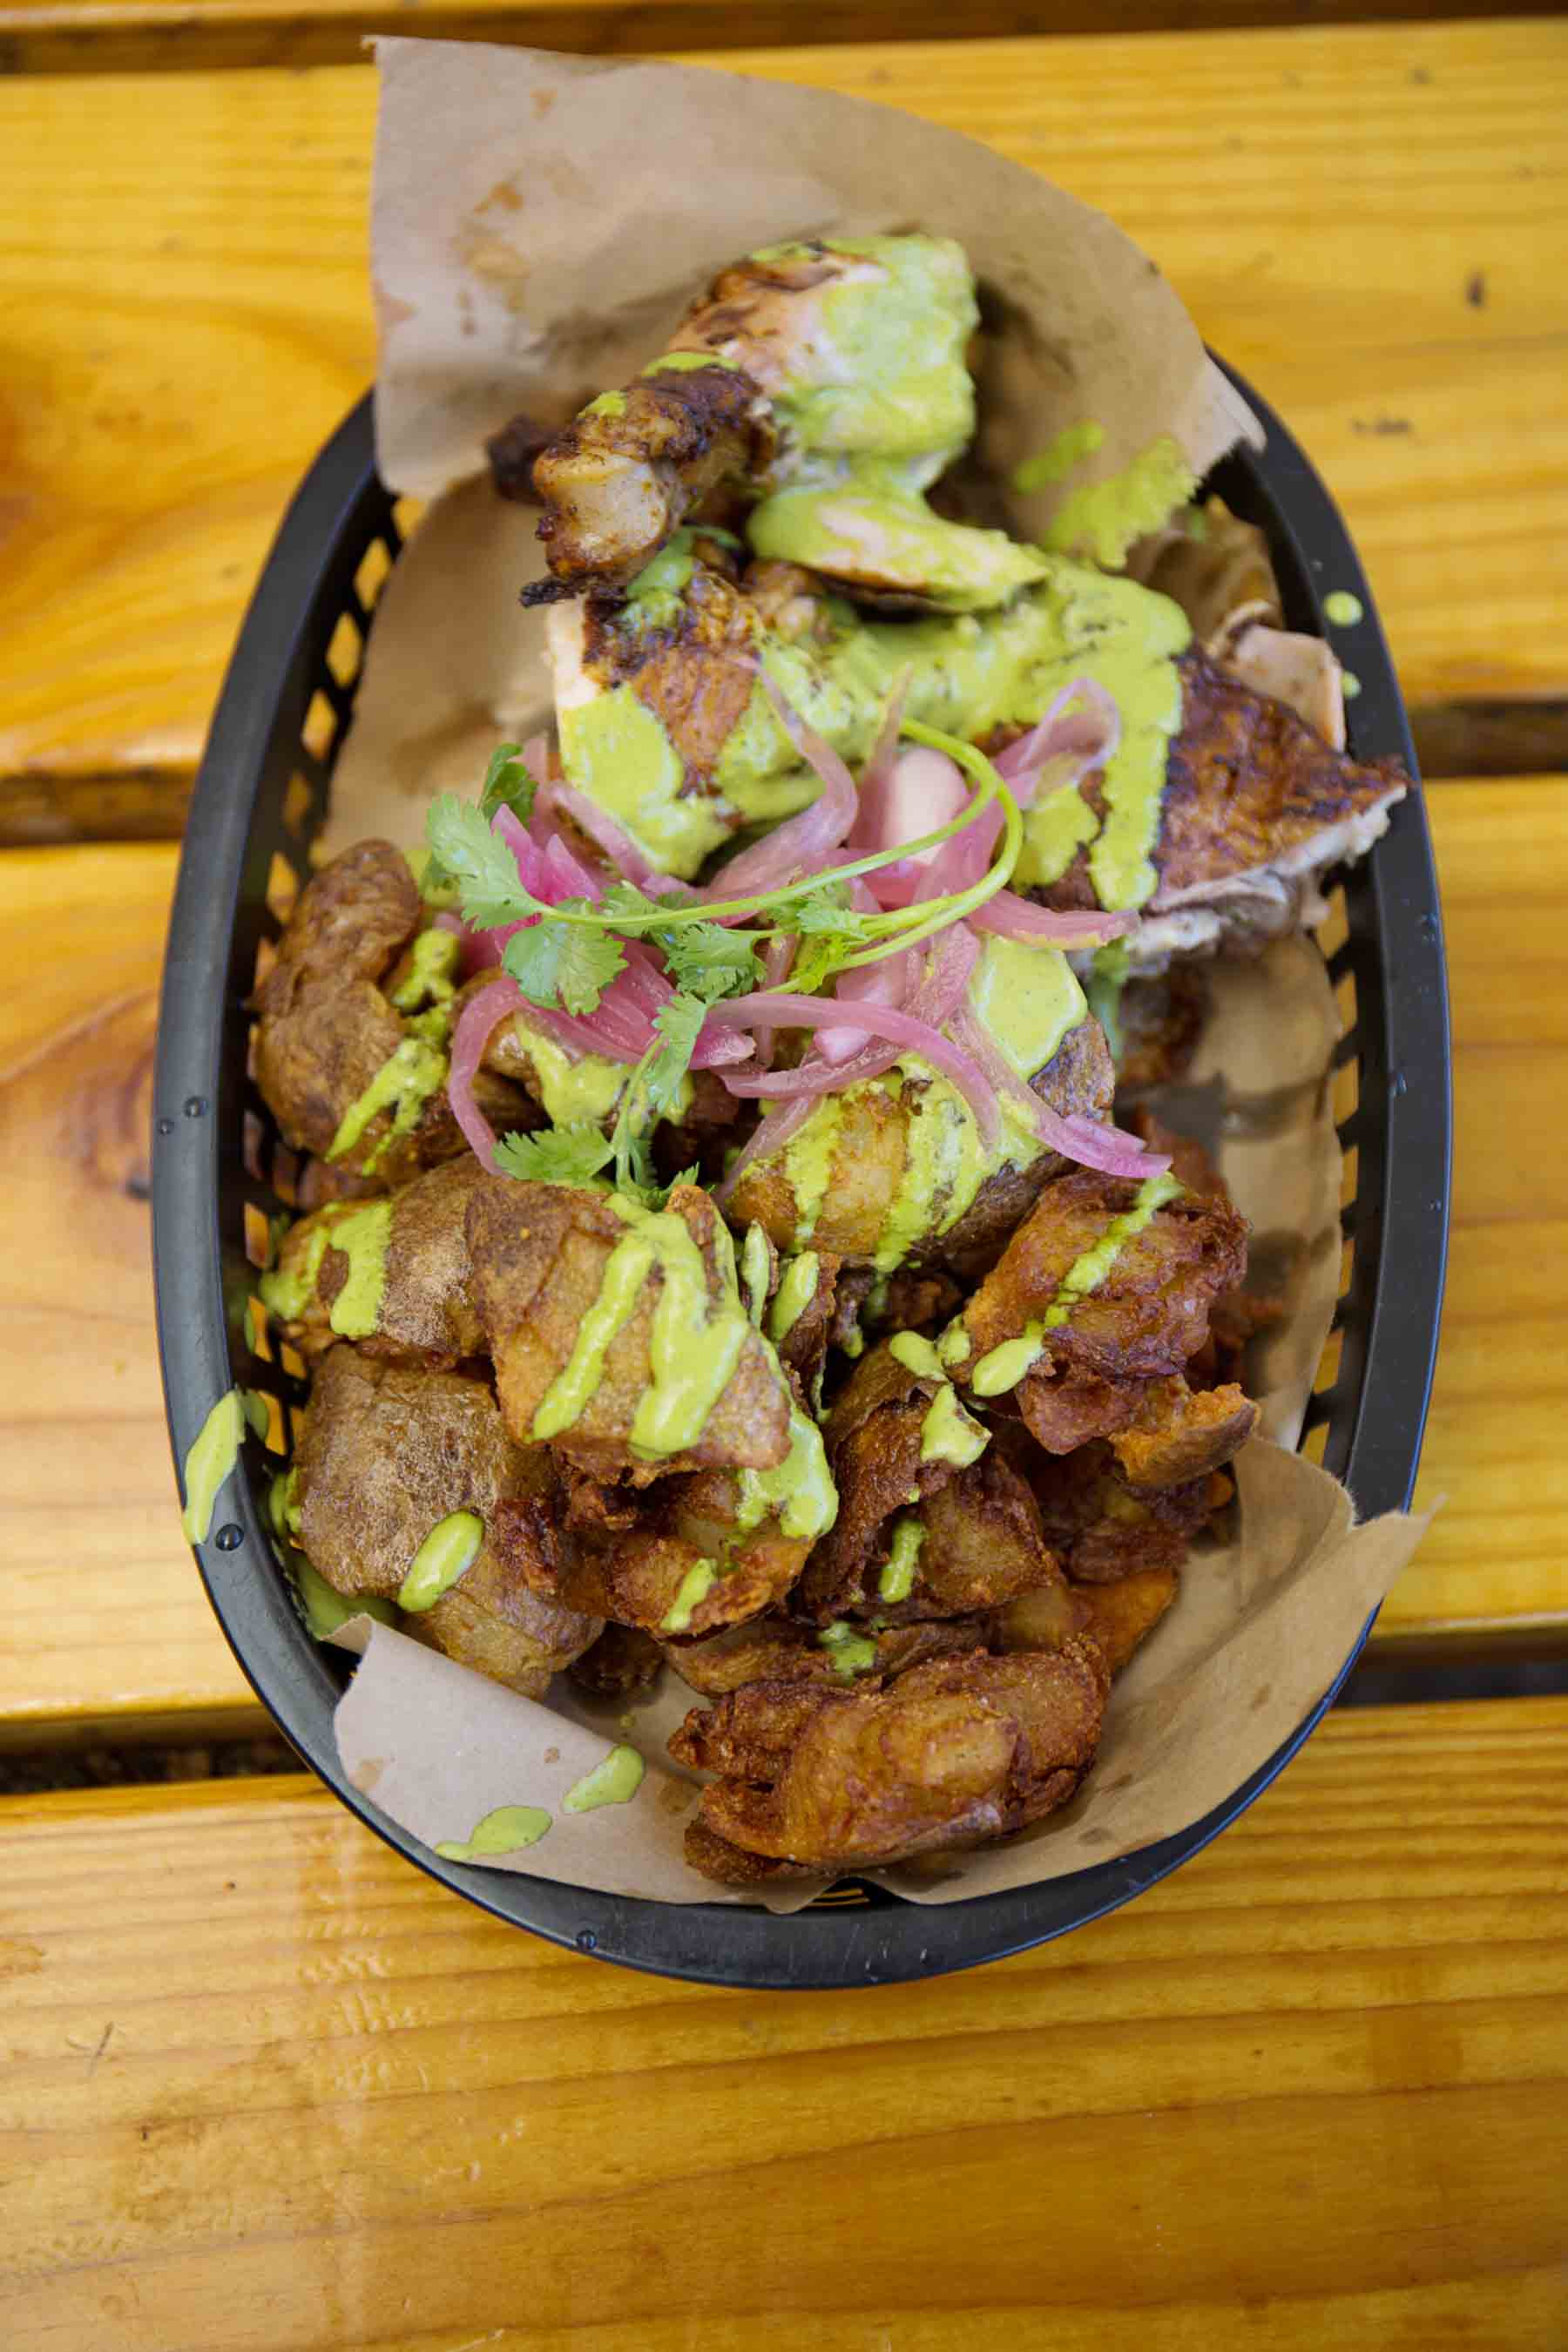 Fried potatoes with guacamole